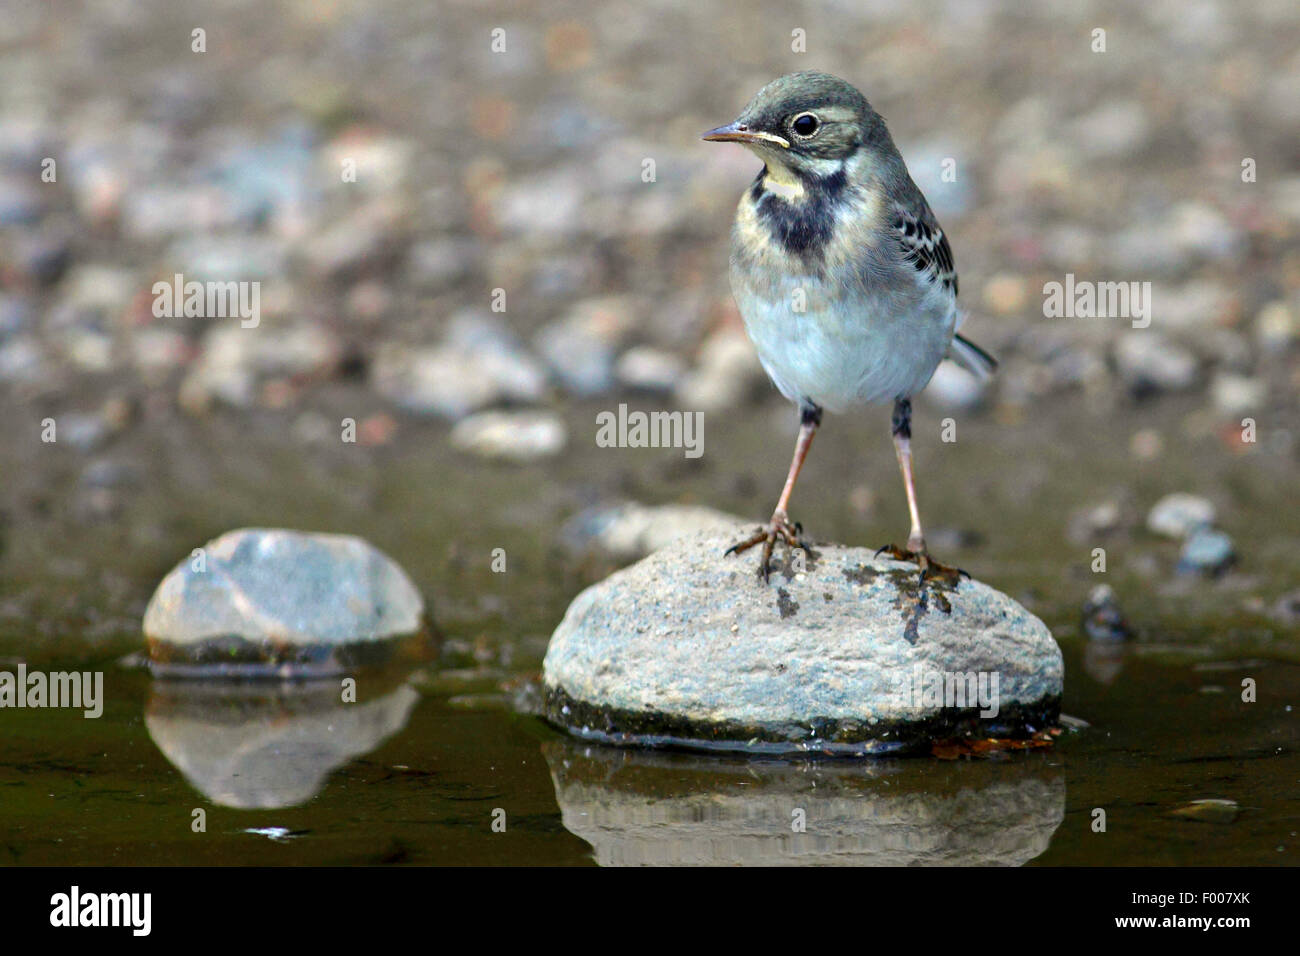 Pied wagtail, Pied white wagtail (Motacilla alba), juvenile on a stone at water, Germany - Stock Image